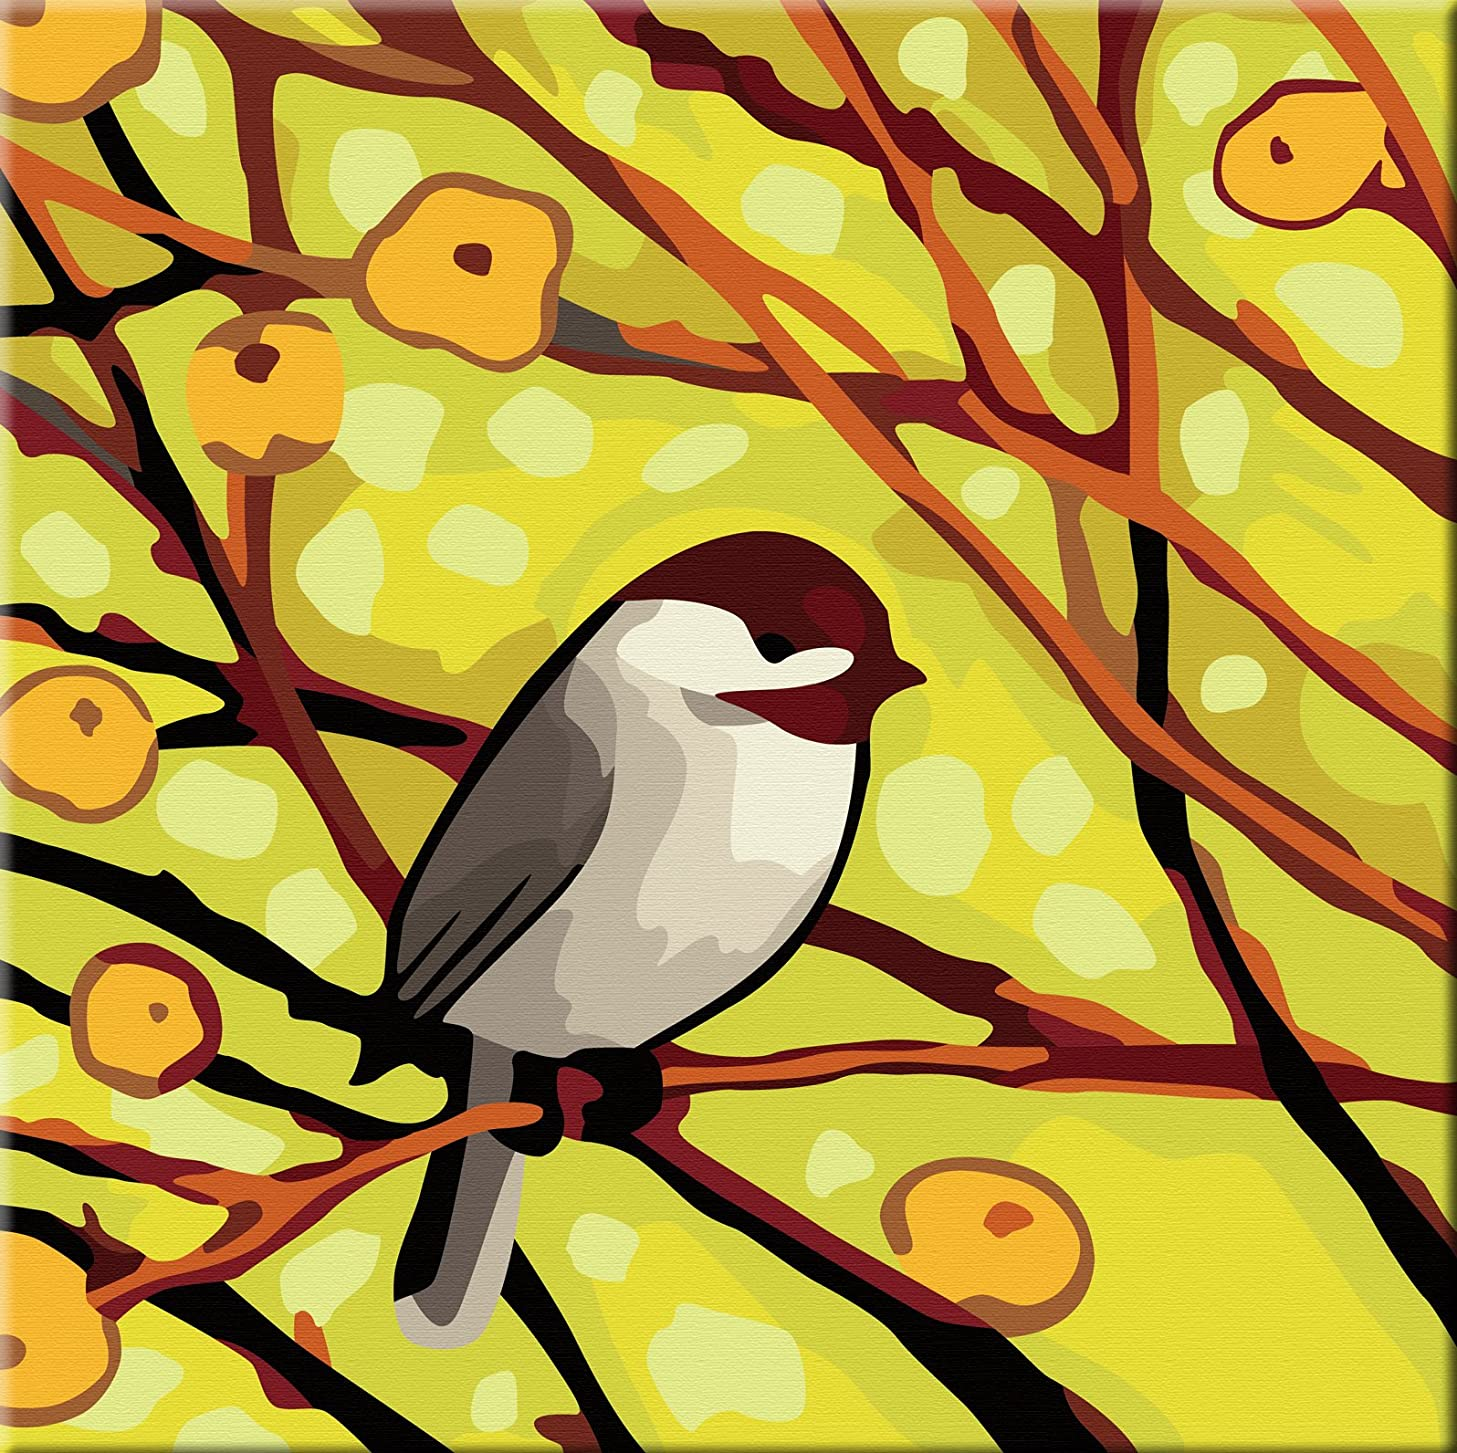 Karribi Paint by Numbers Kit for Adults and Children - Spring Birds Series (Bird I)